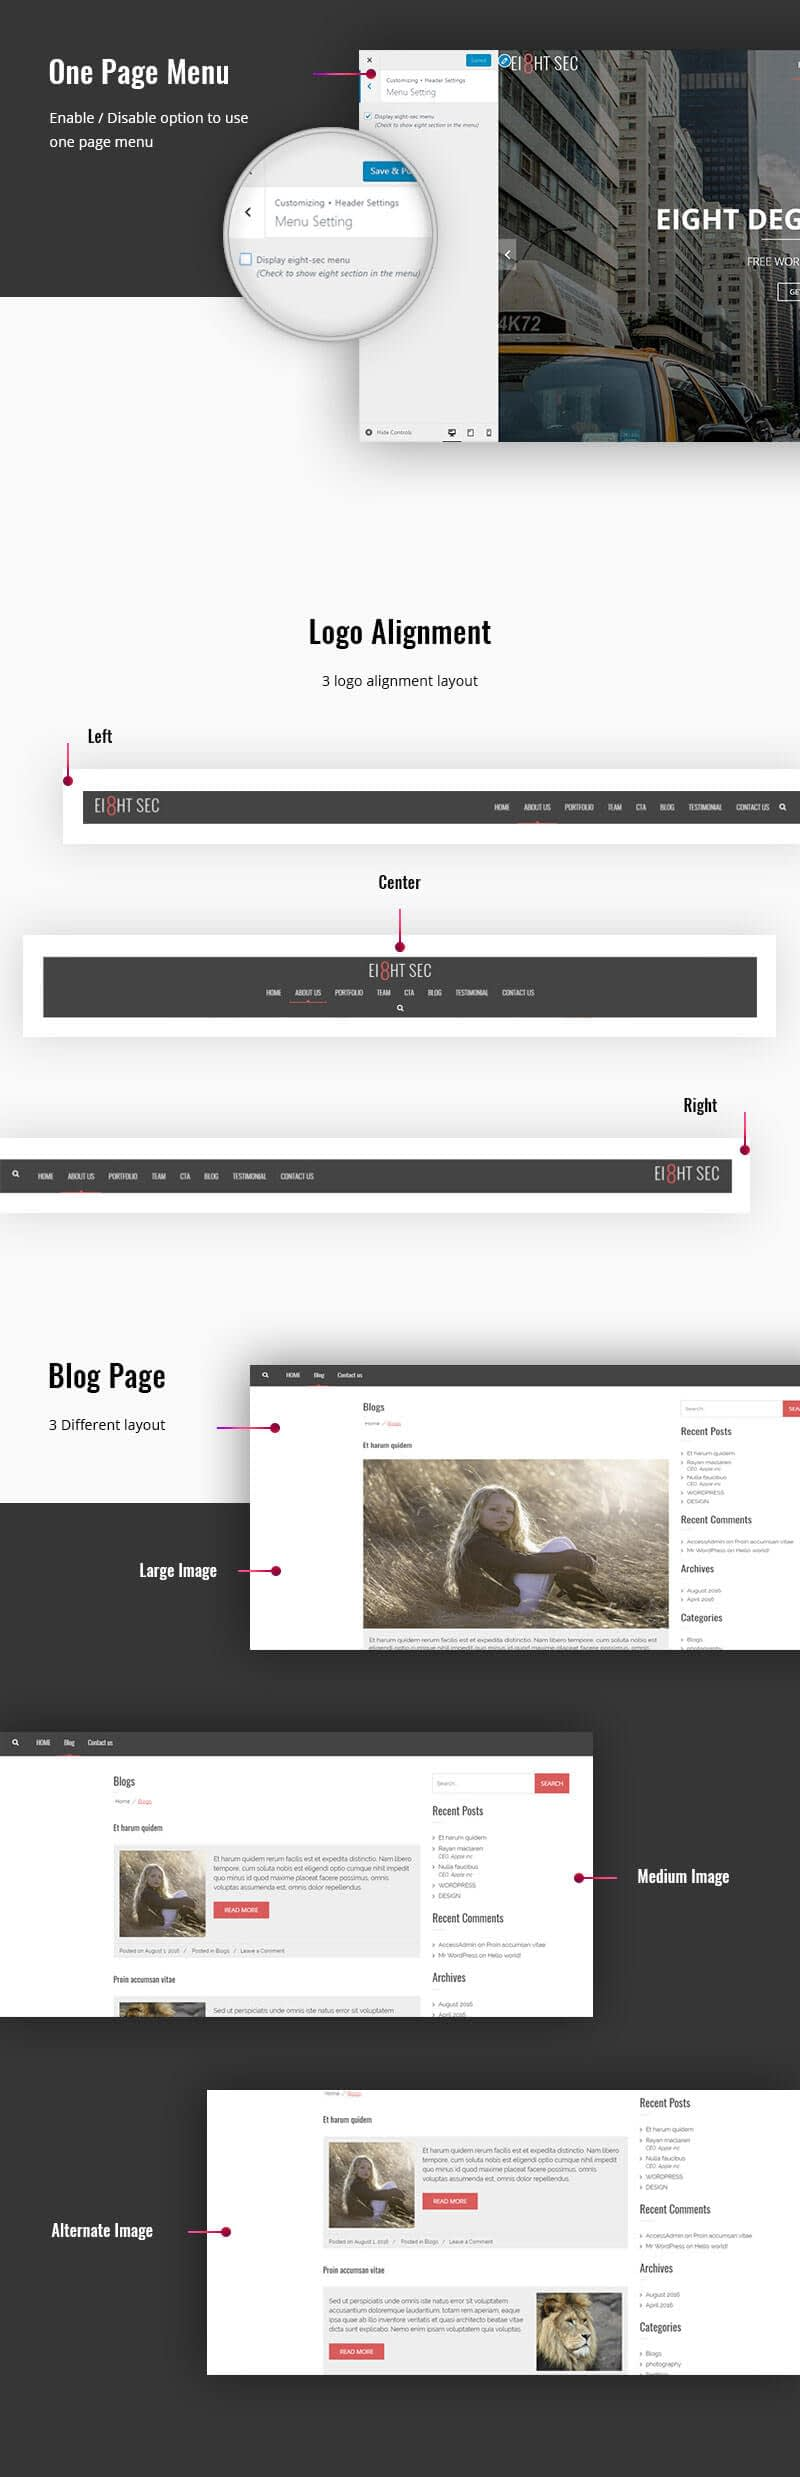 Eight Sec – Free One Page WordPress Theme